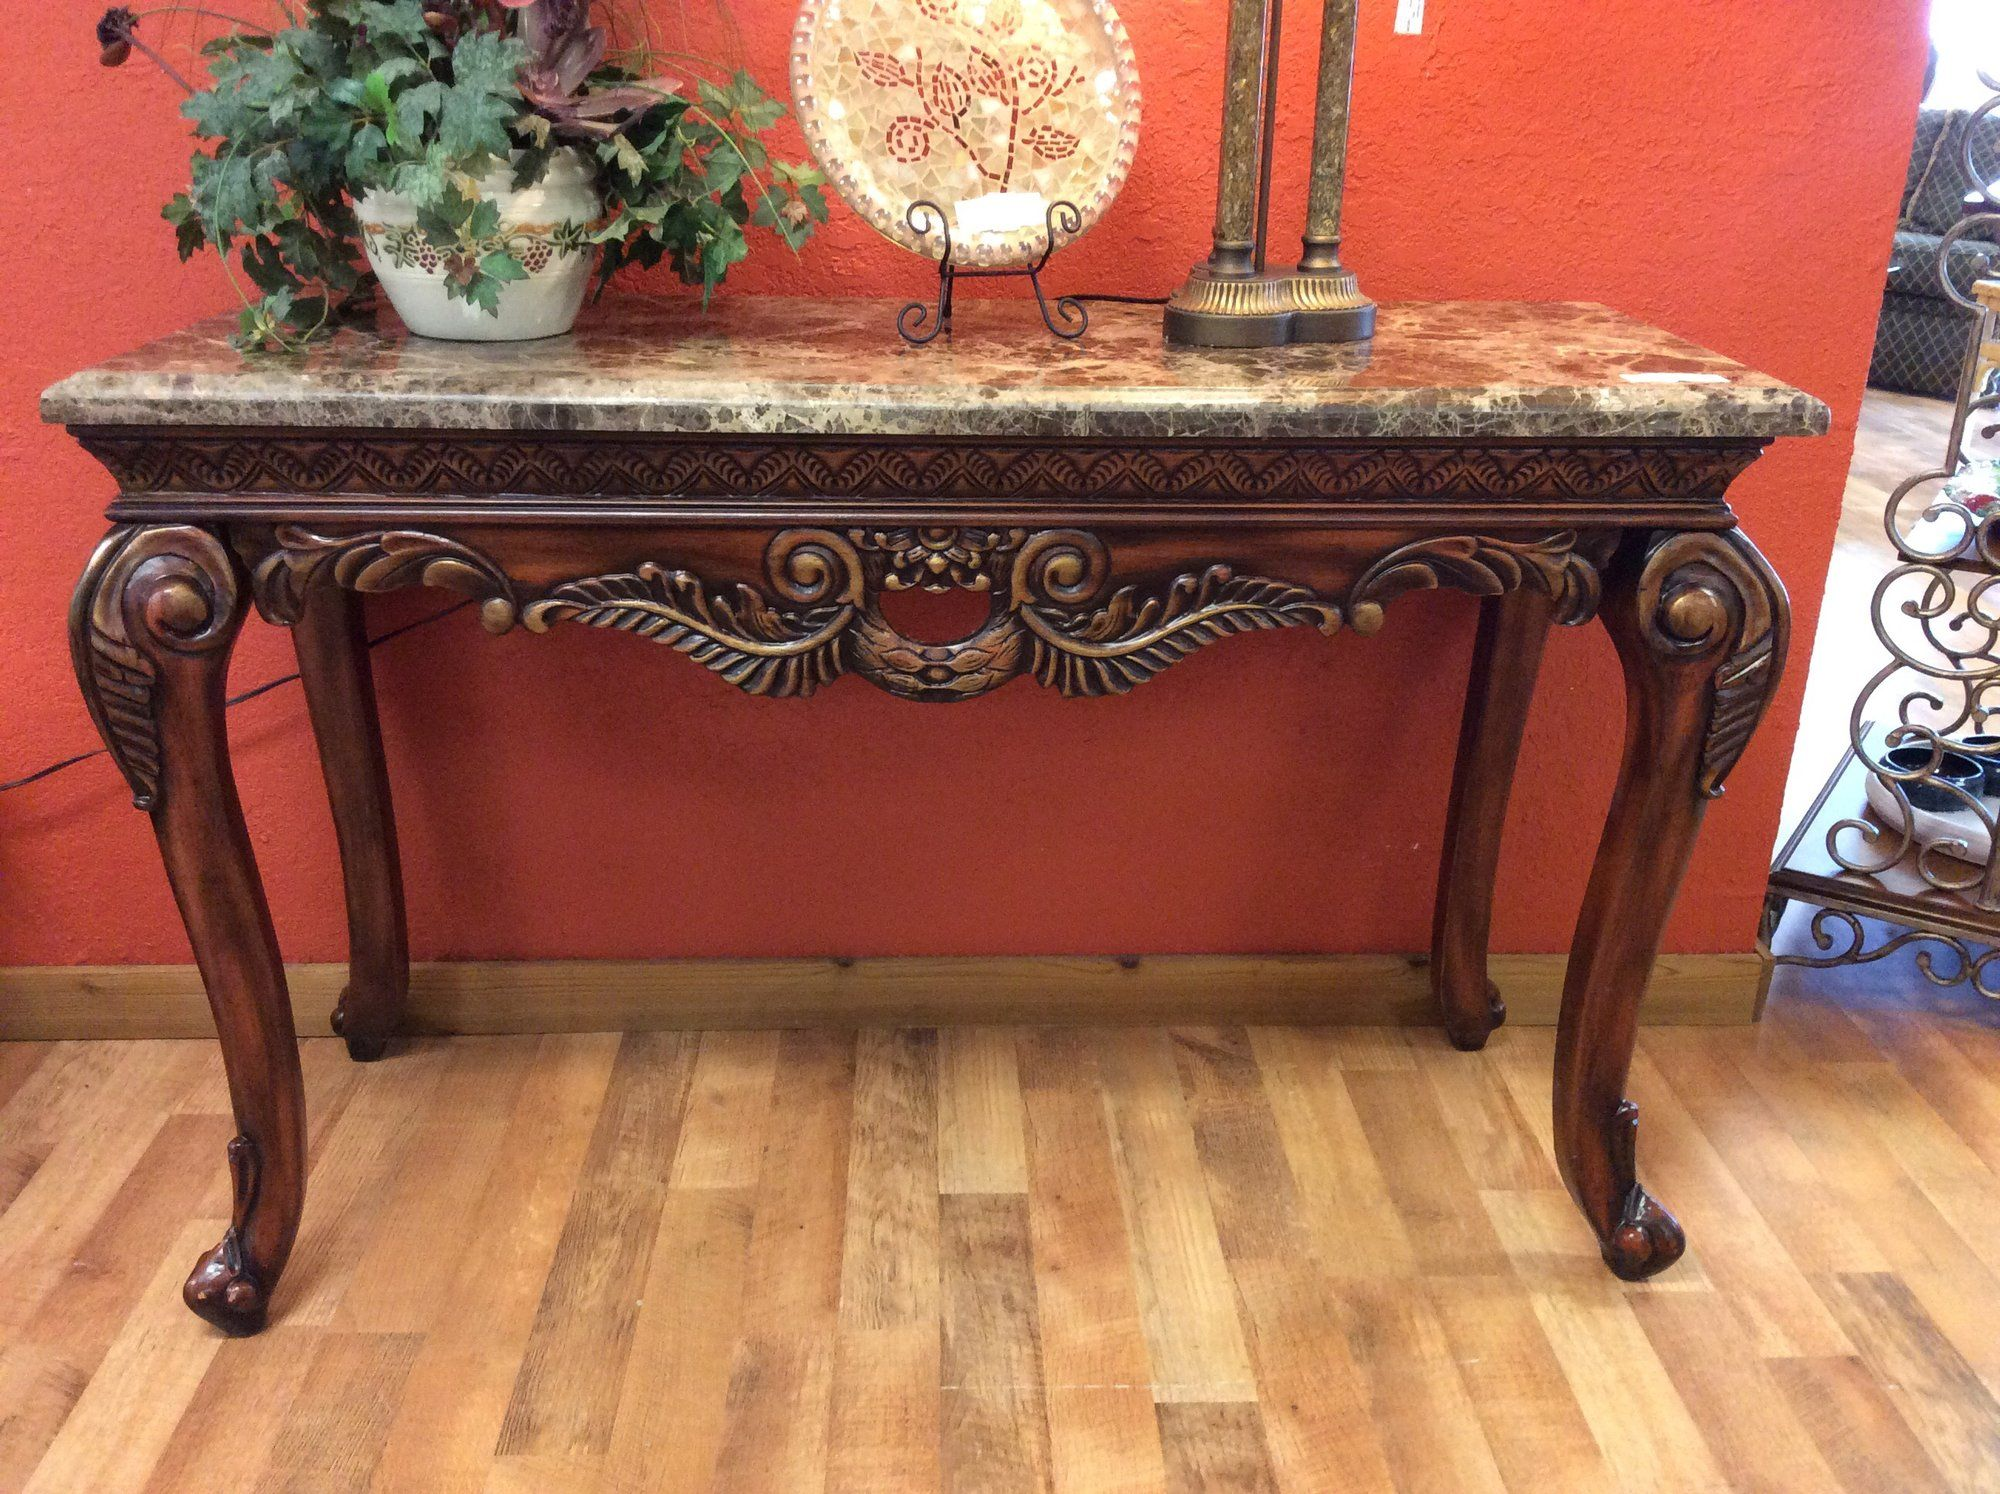 Here is an impressive tall entry or sofa table with detailed ...